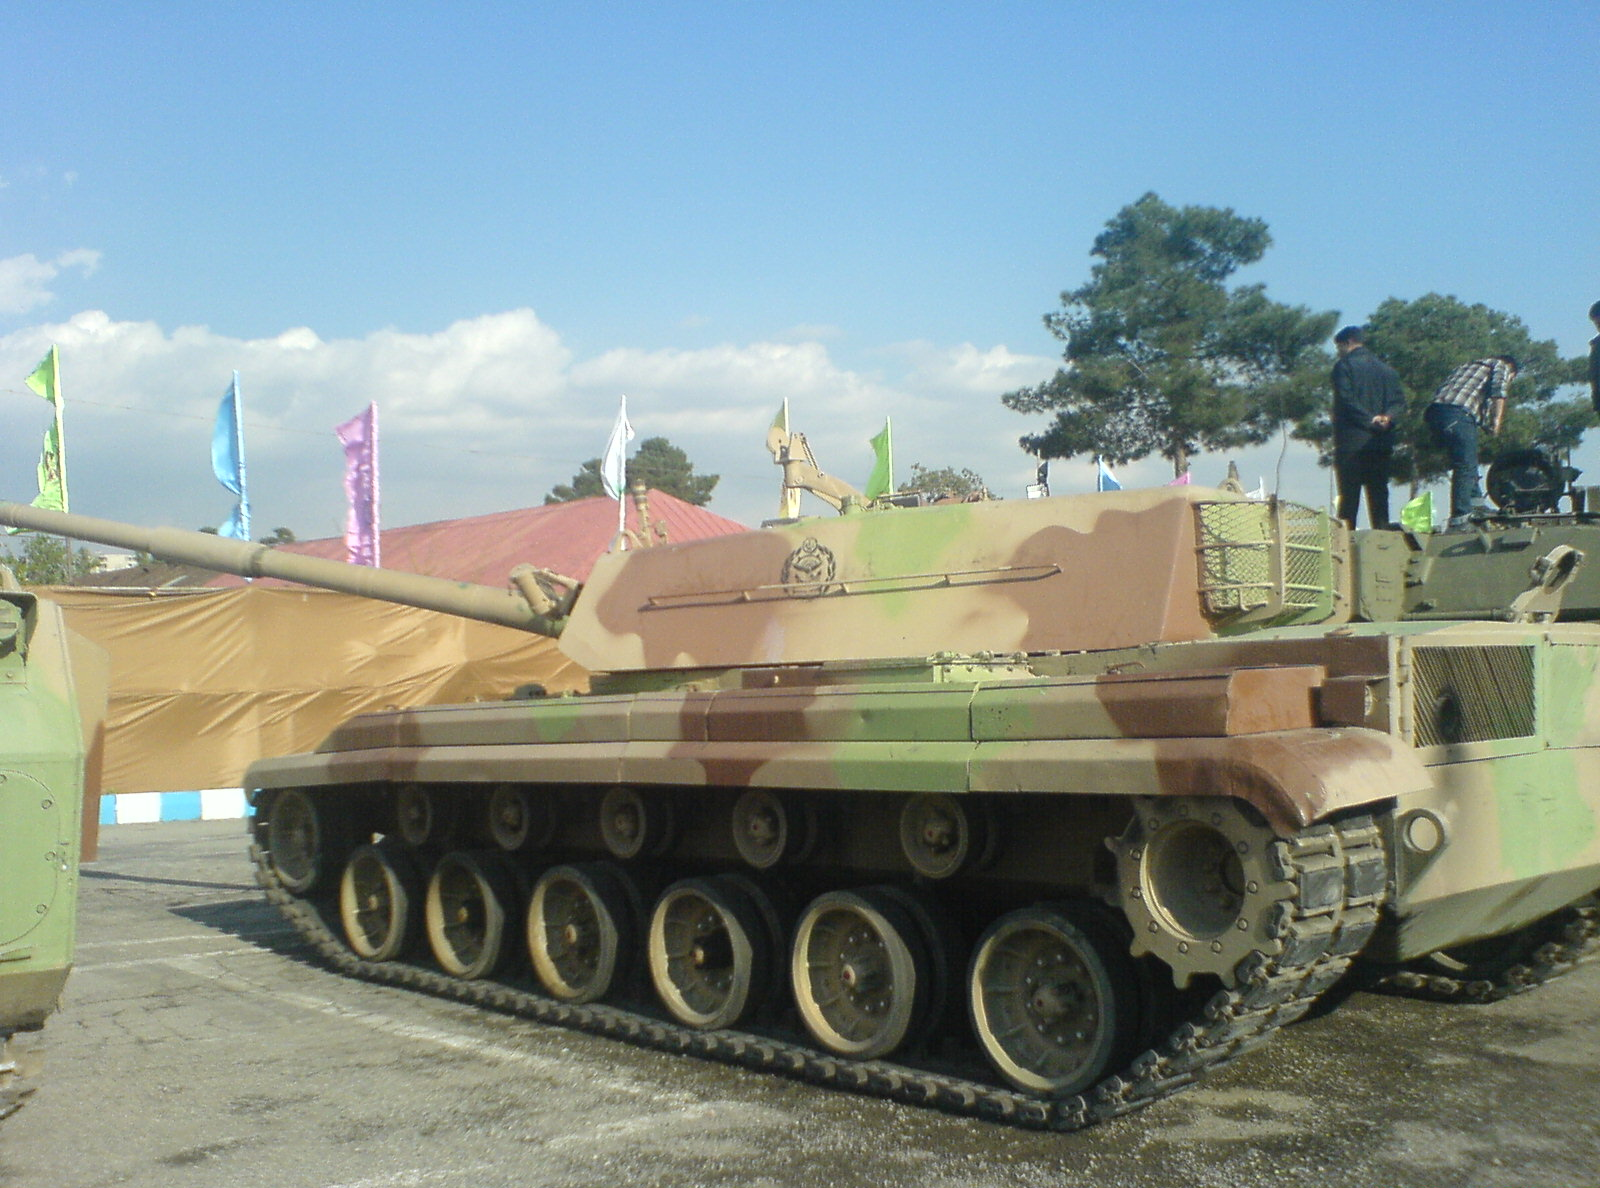 http://upload.wikimedia.org/wikipedia/commons/5/52/Zulfiqar_Tank_-_Side_View.JPG